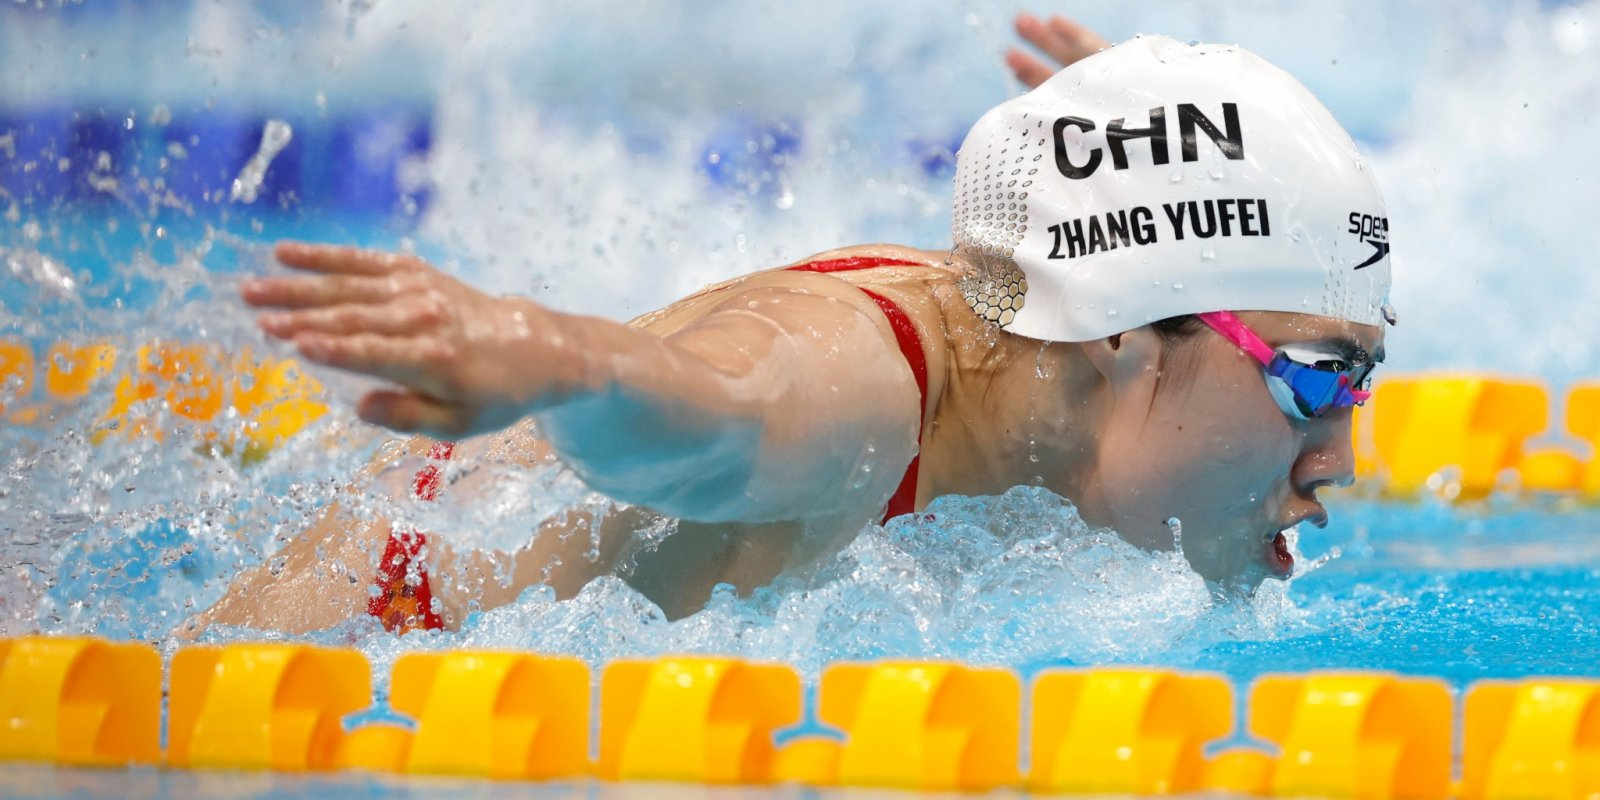 Chinese swimmer Zhang Yufei bags 200m butterfly gold at Tokyo Olympics